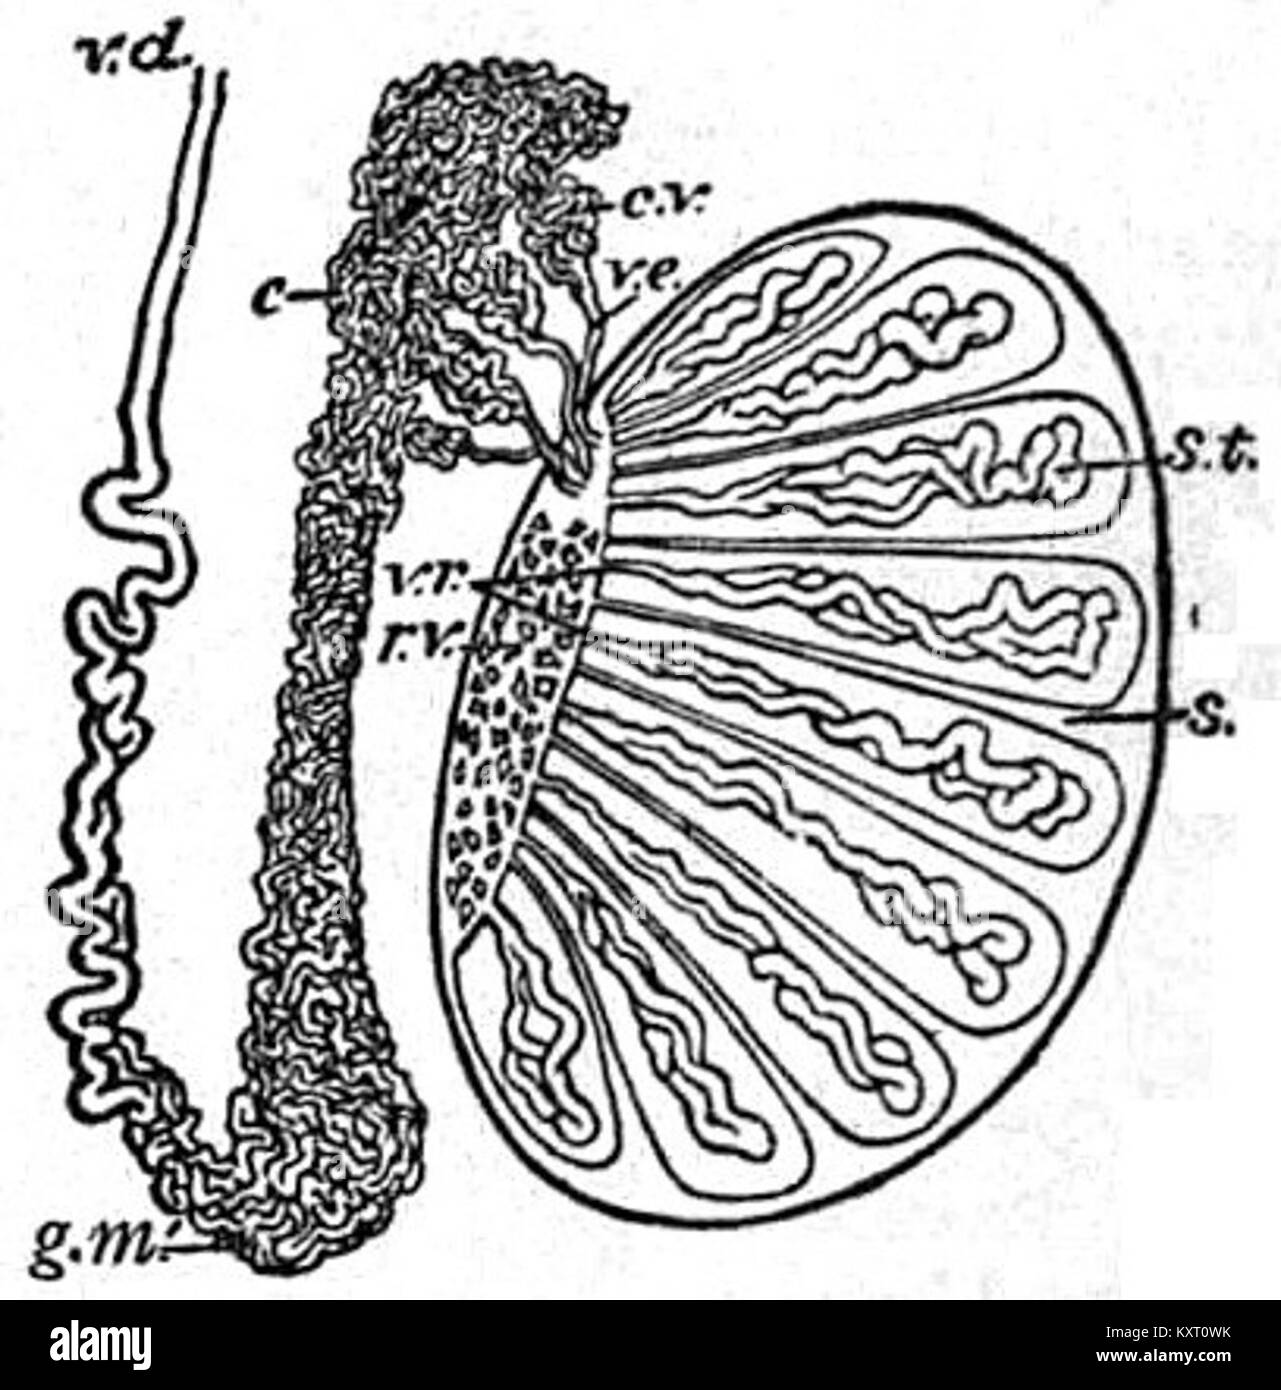 Eb1911 Reproductive System In Anatomy Testis And Epididymis Stock